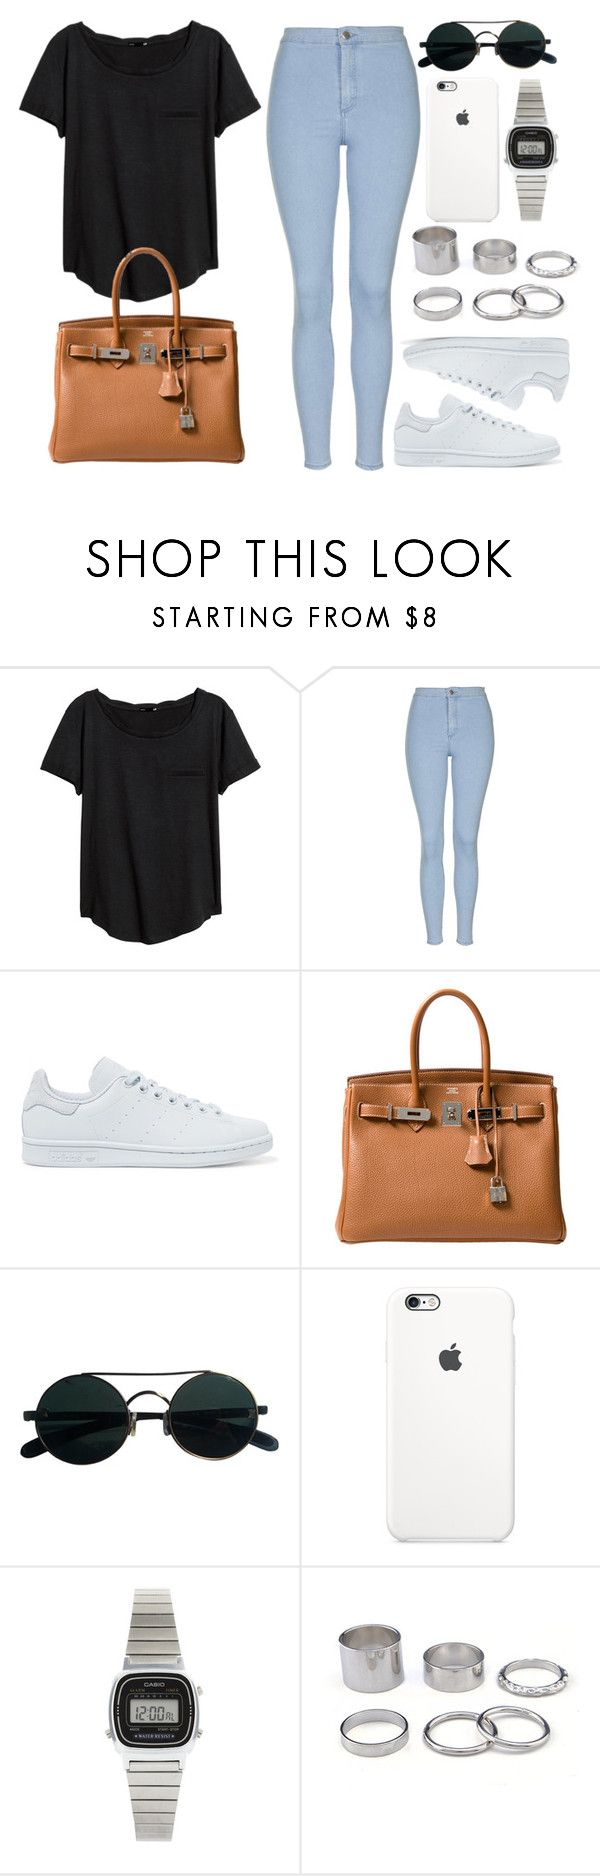 """Style #11069"" by vany-alvarado ❤ liked on Polyvore featuring H&M, Topshop, adidas Originals, Hermès and Casio"